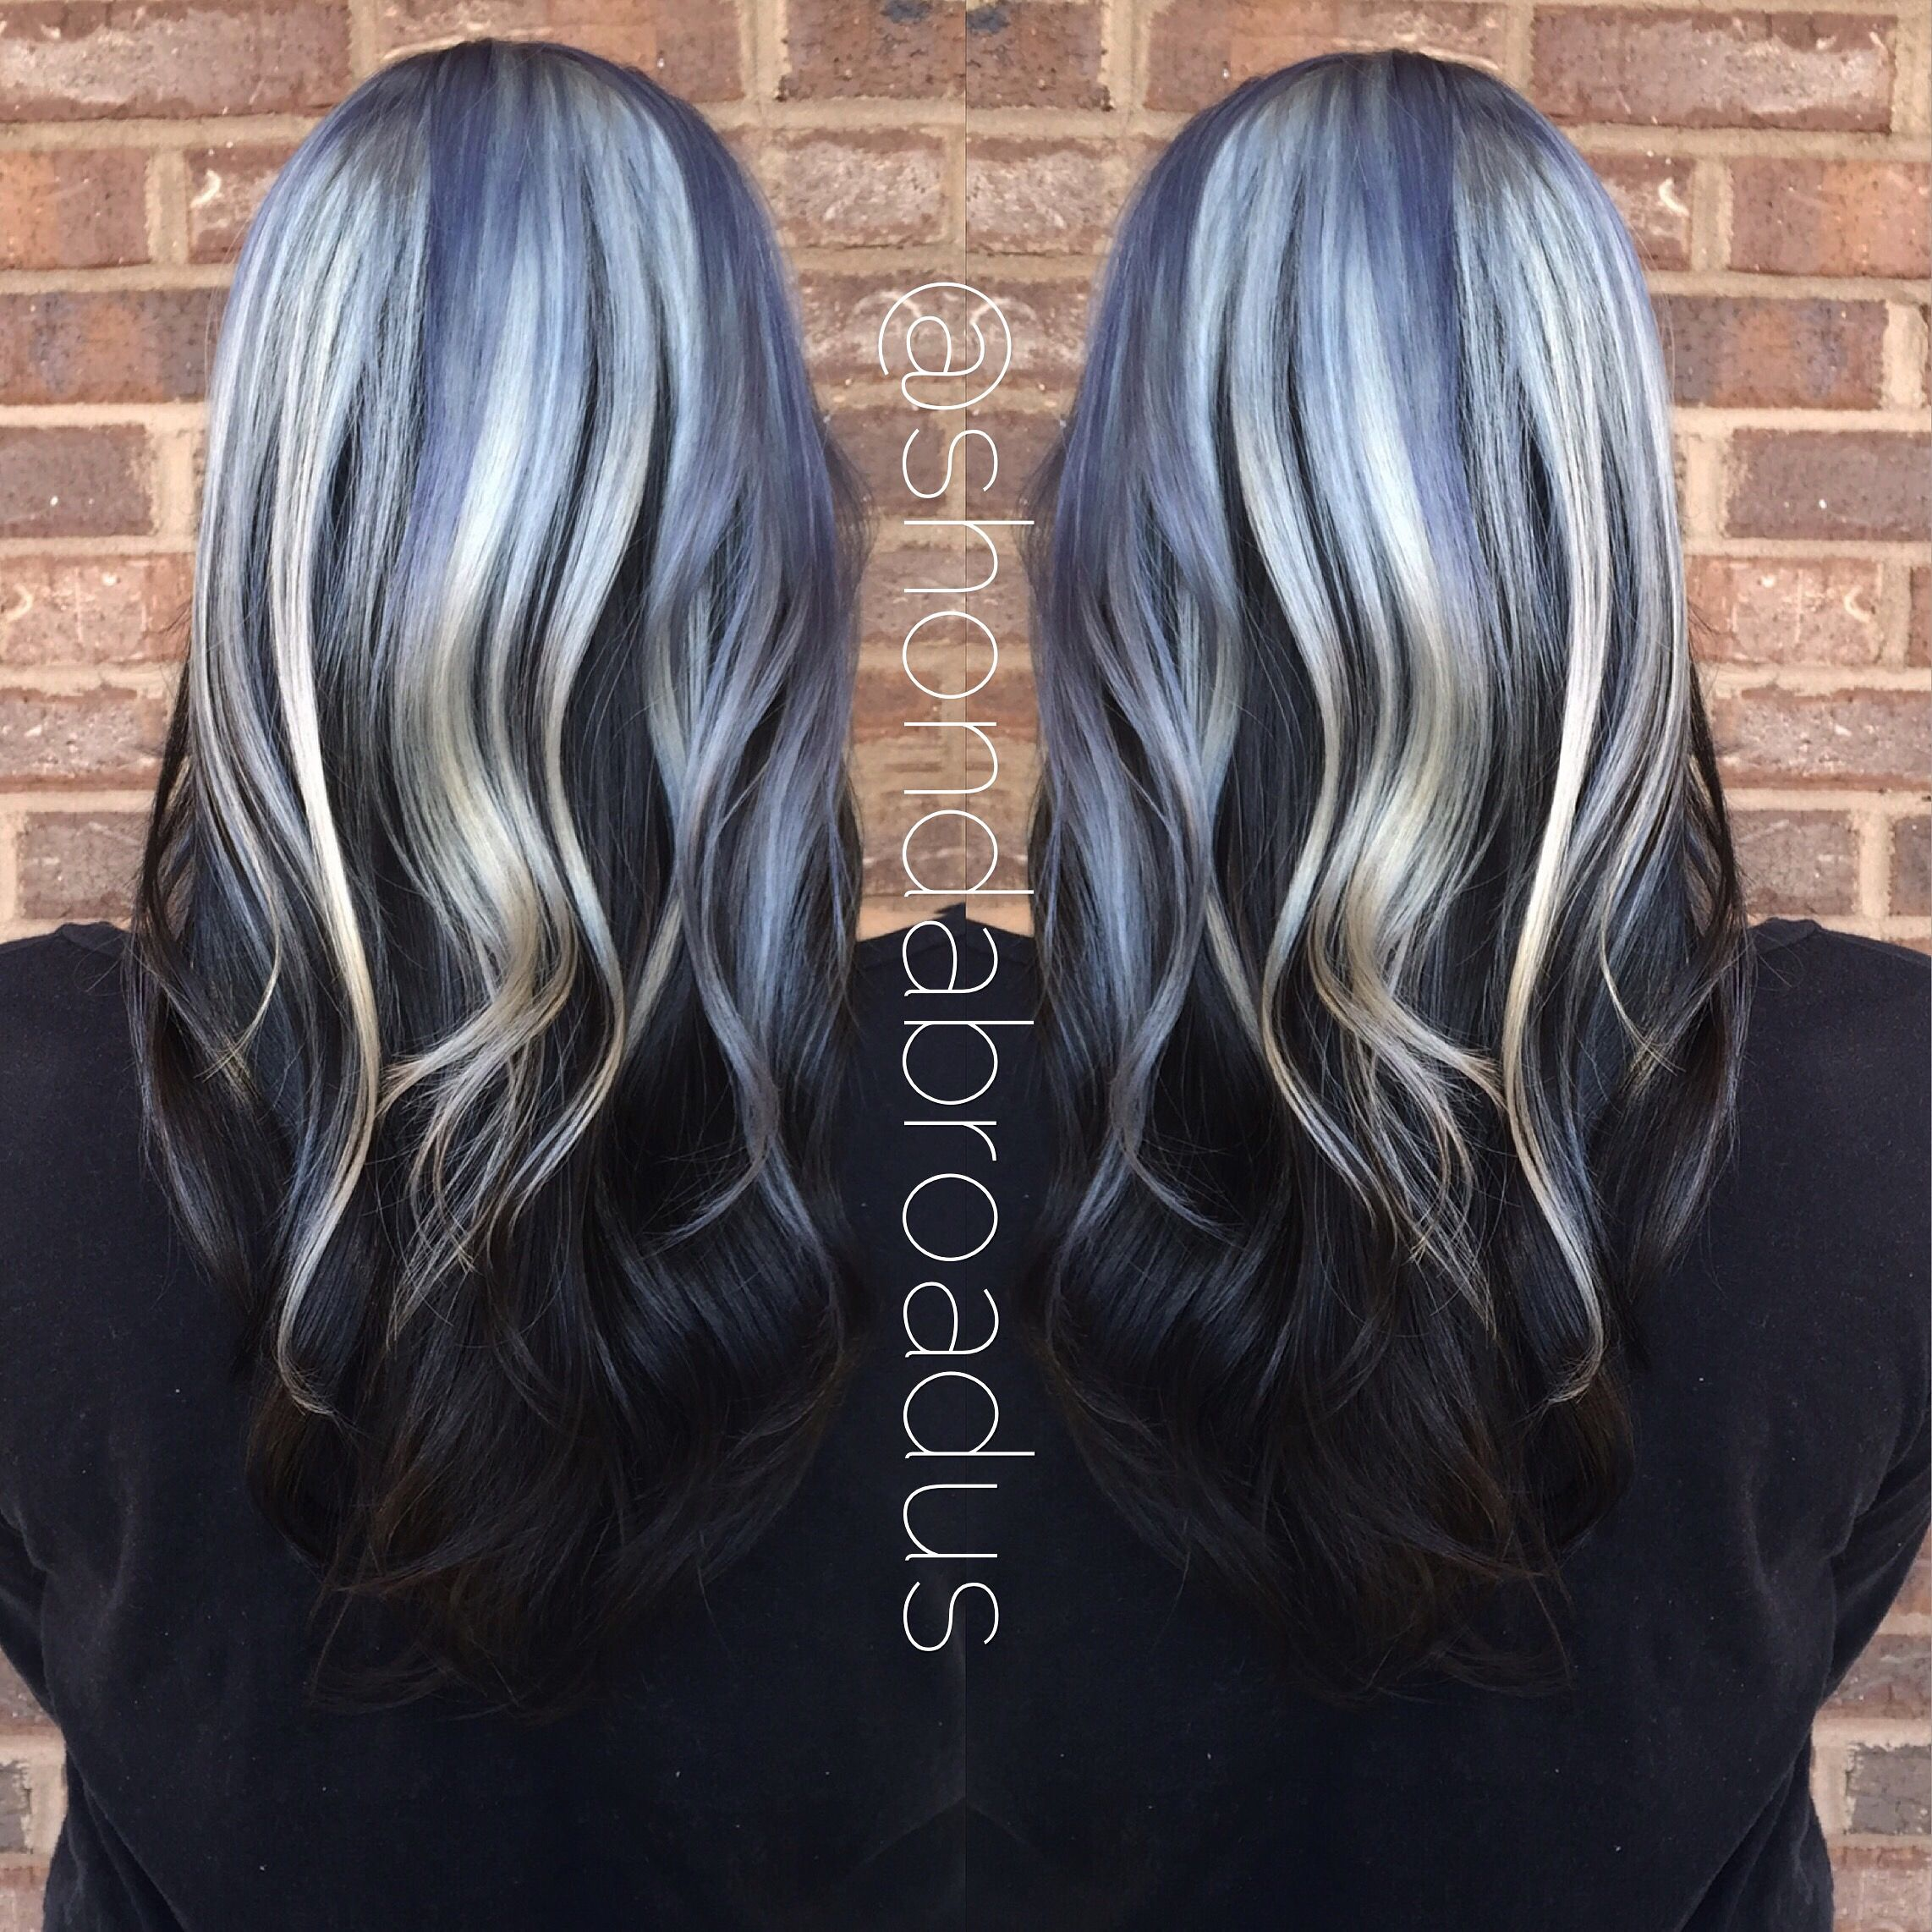 How To Ice Princess Featuring Shades Of Blue And Silver Highlights Brown Hair With Silver Highlights Silver Hair Hair